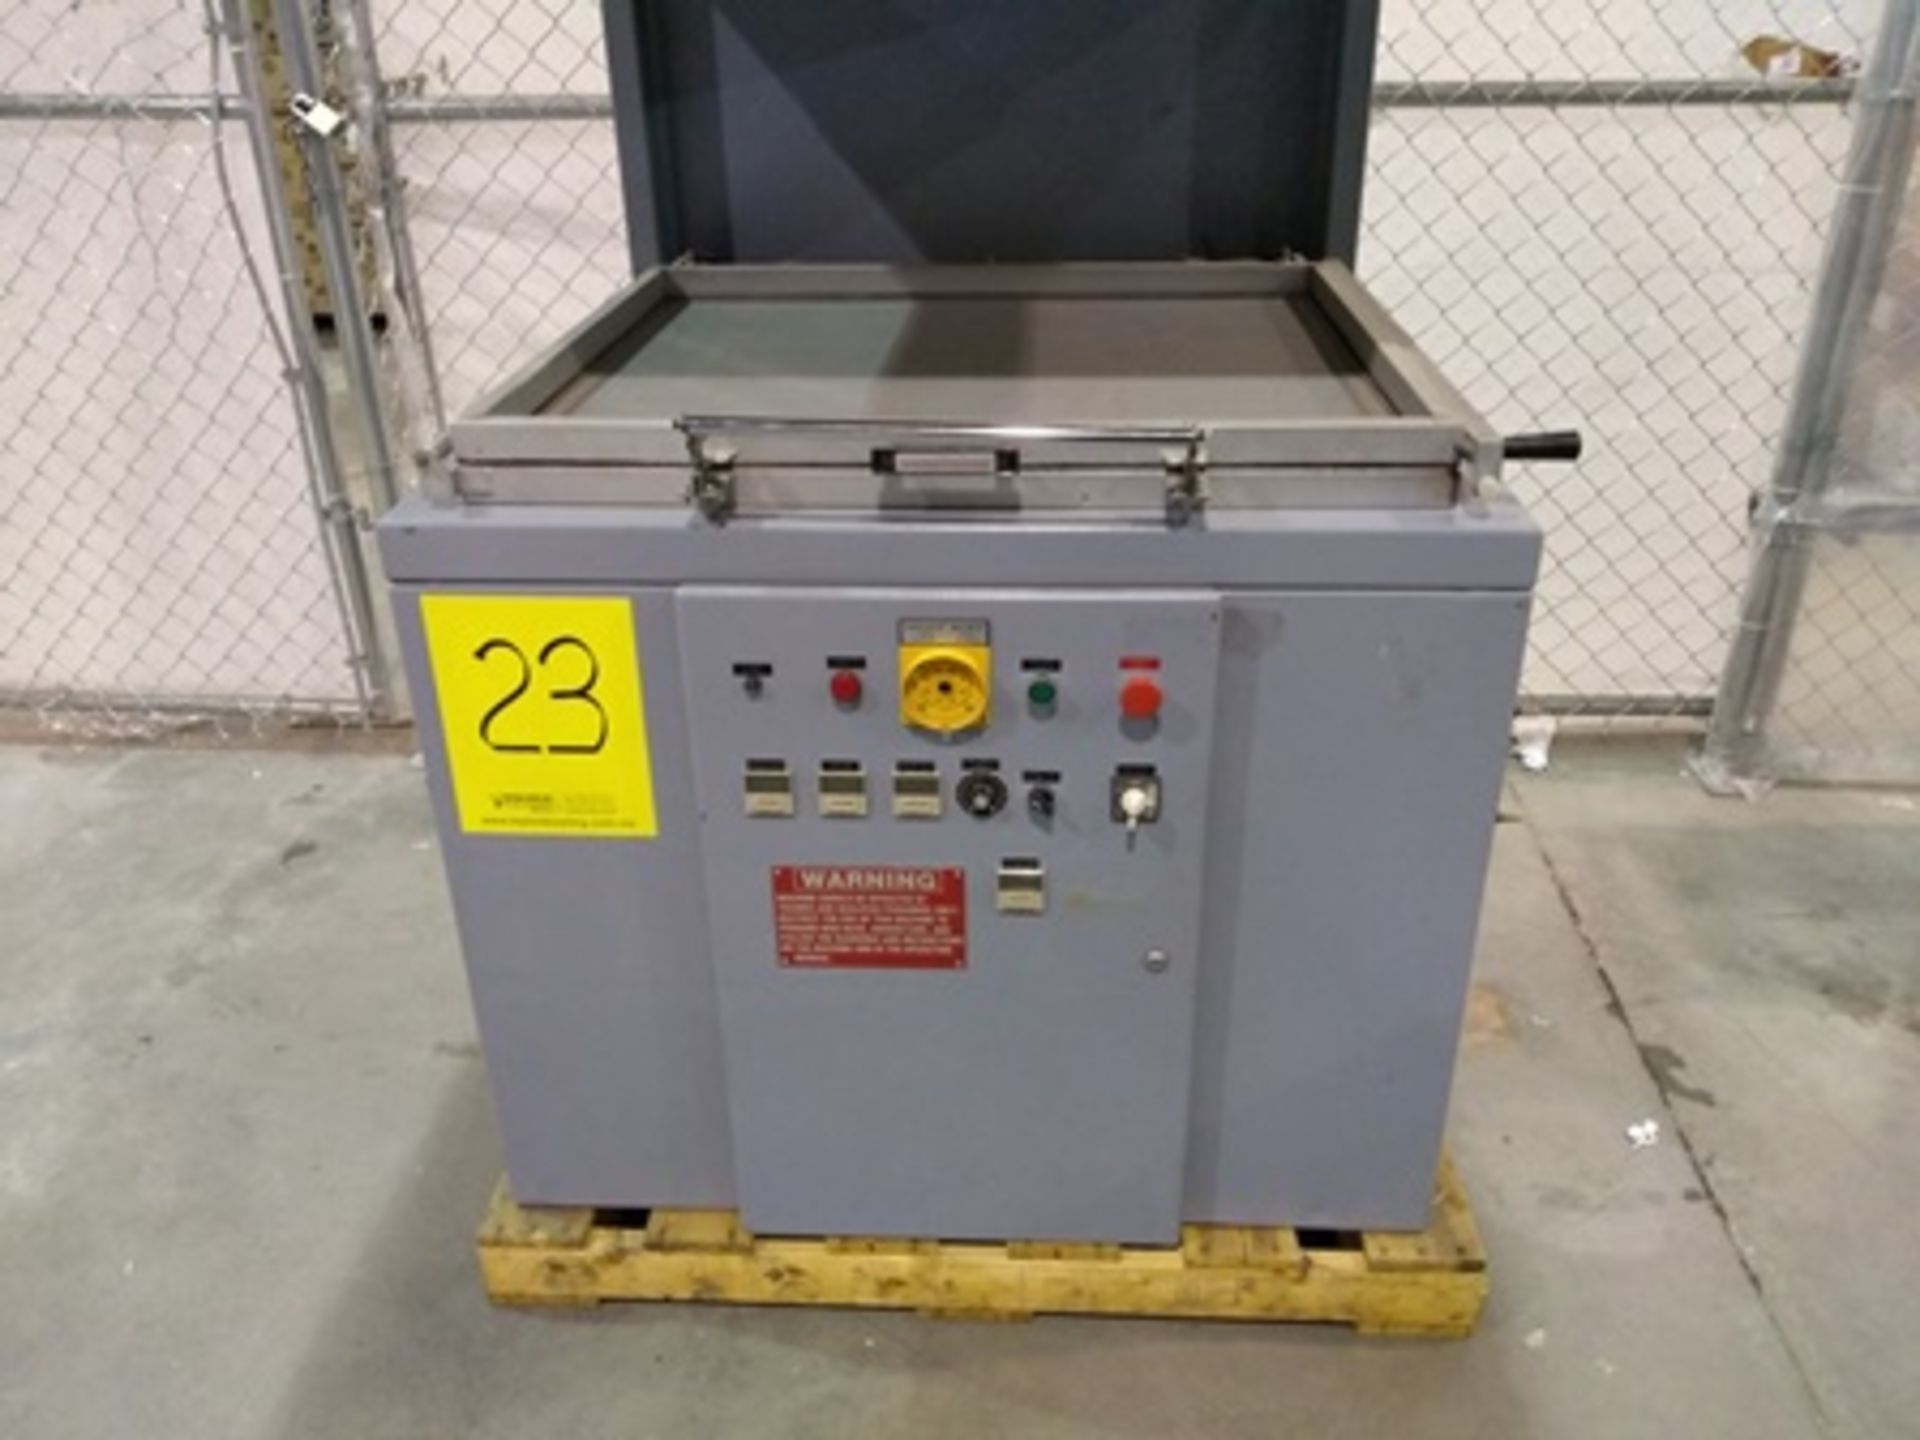 Lot 23 - Visual Thermoforming model CT3036 skin packager, S/N 43390395, 220V, 3PH, 60HZ, 27.5x35 inch…